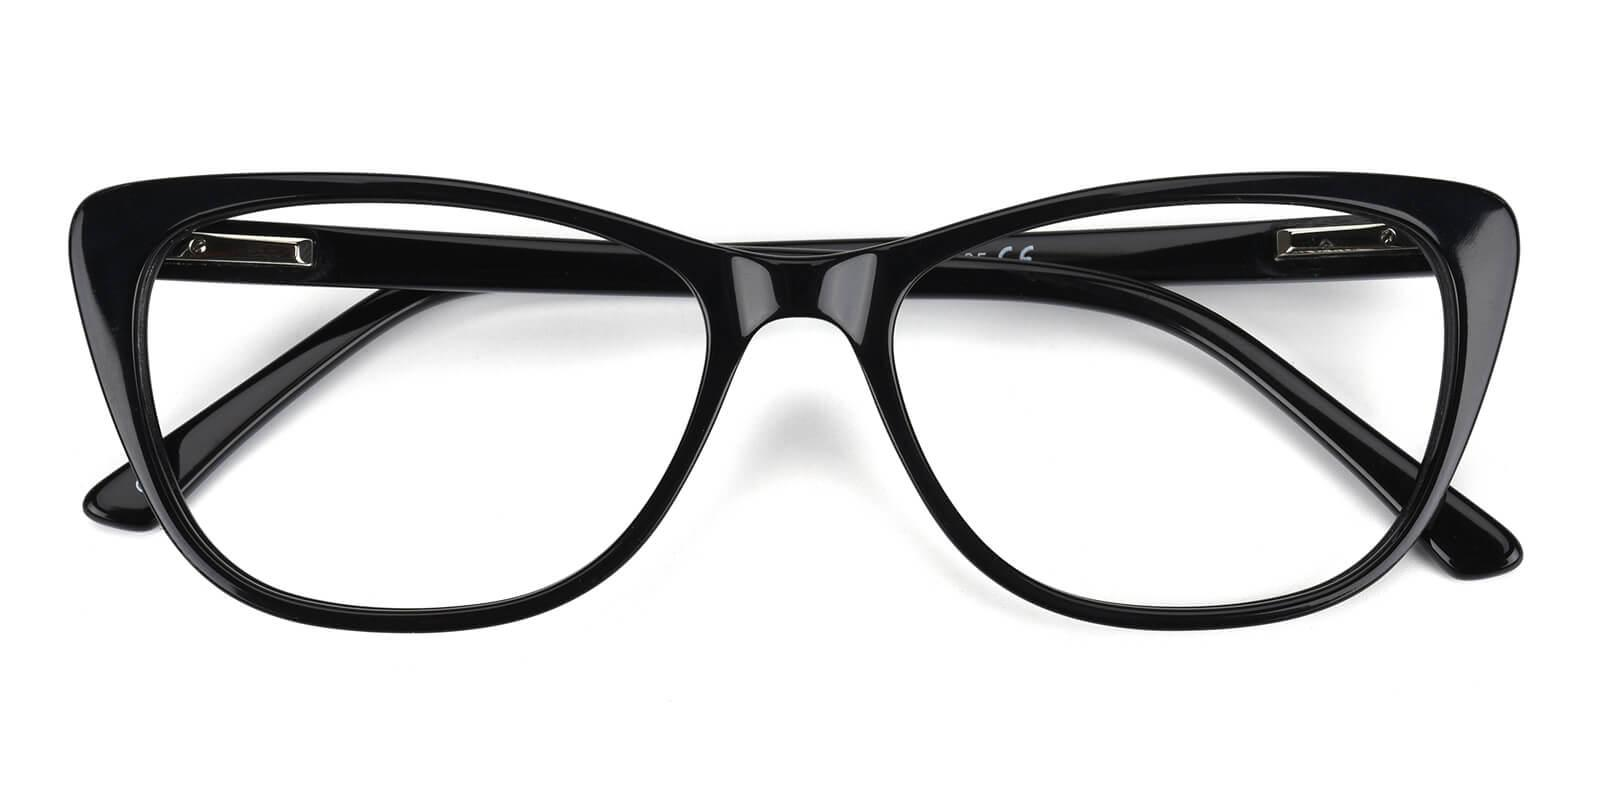 Tersaki-Black-Cat-Acetate-Eyeglasses-detail